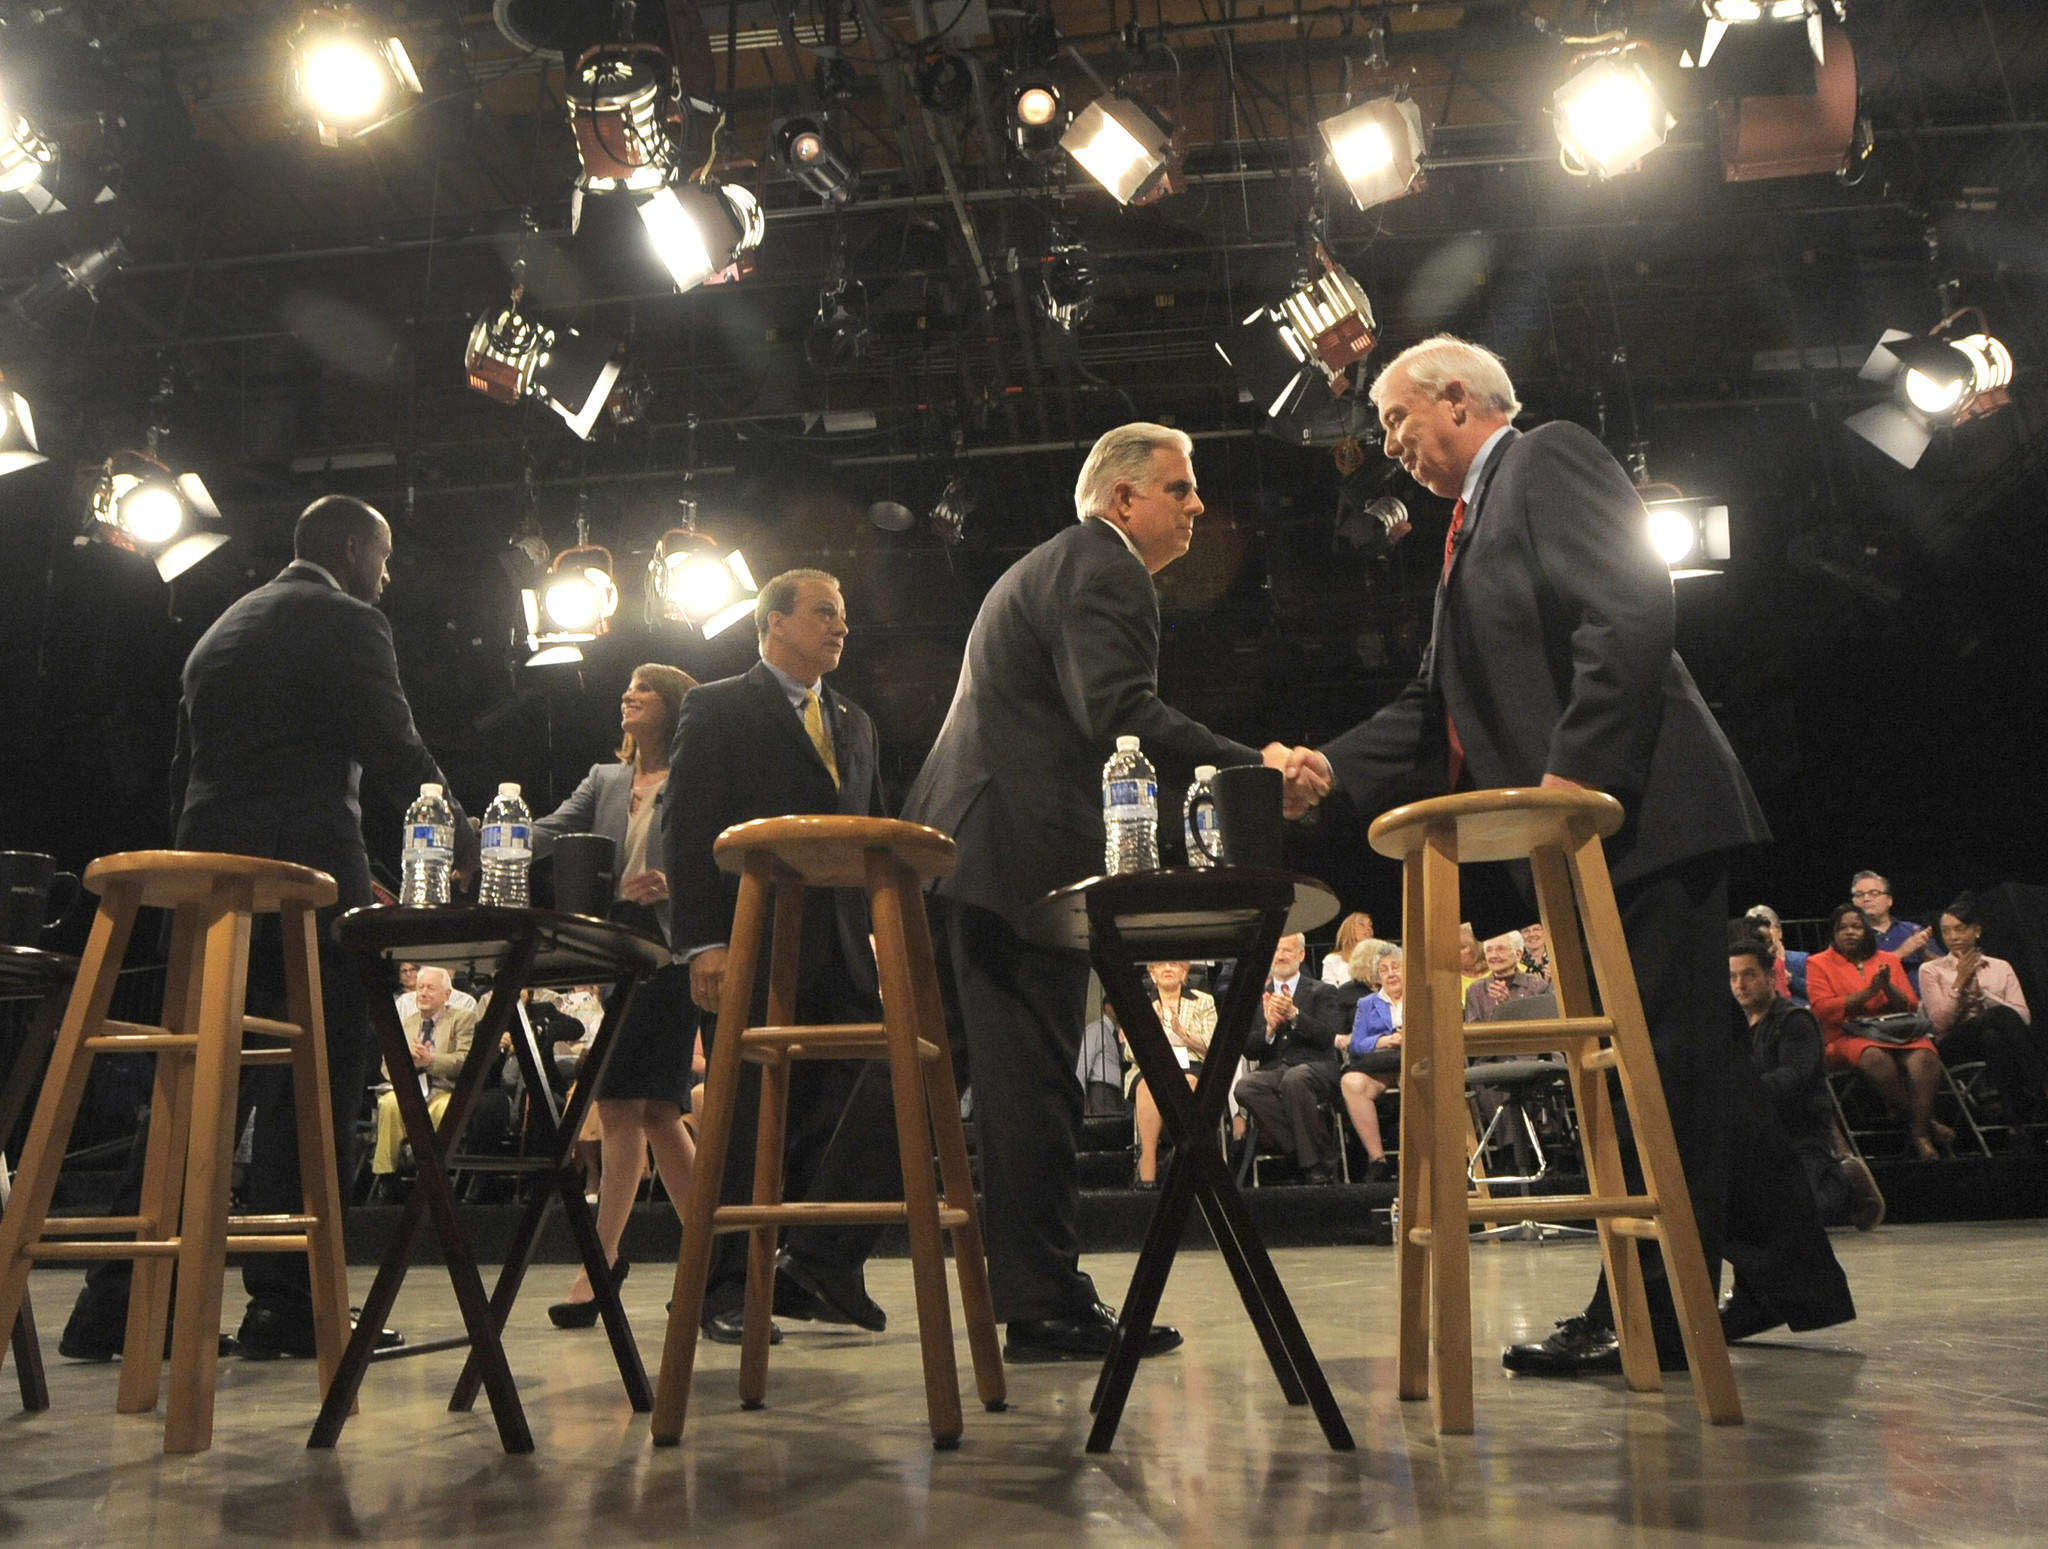 David Craig, right, and Larry Hogan, left, shake hands after their debate.